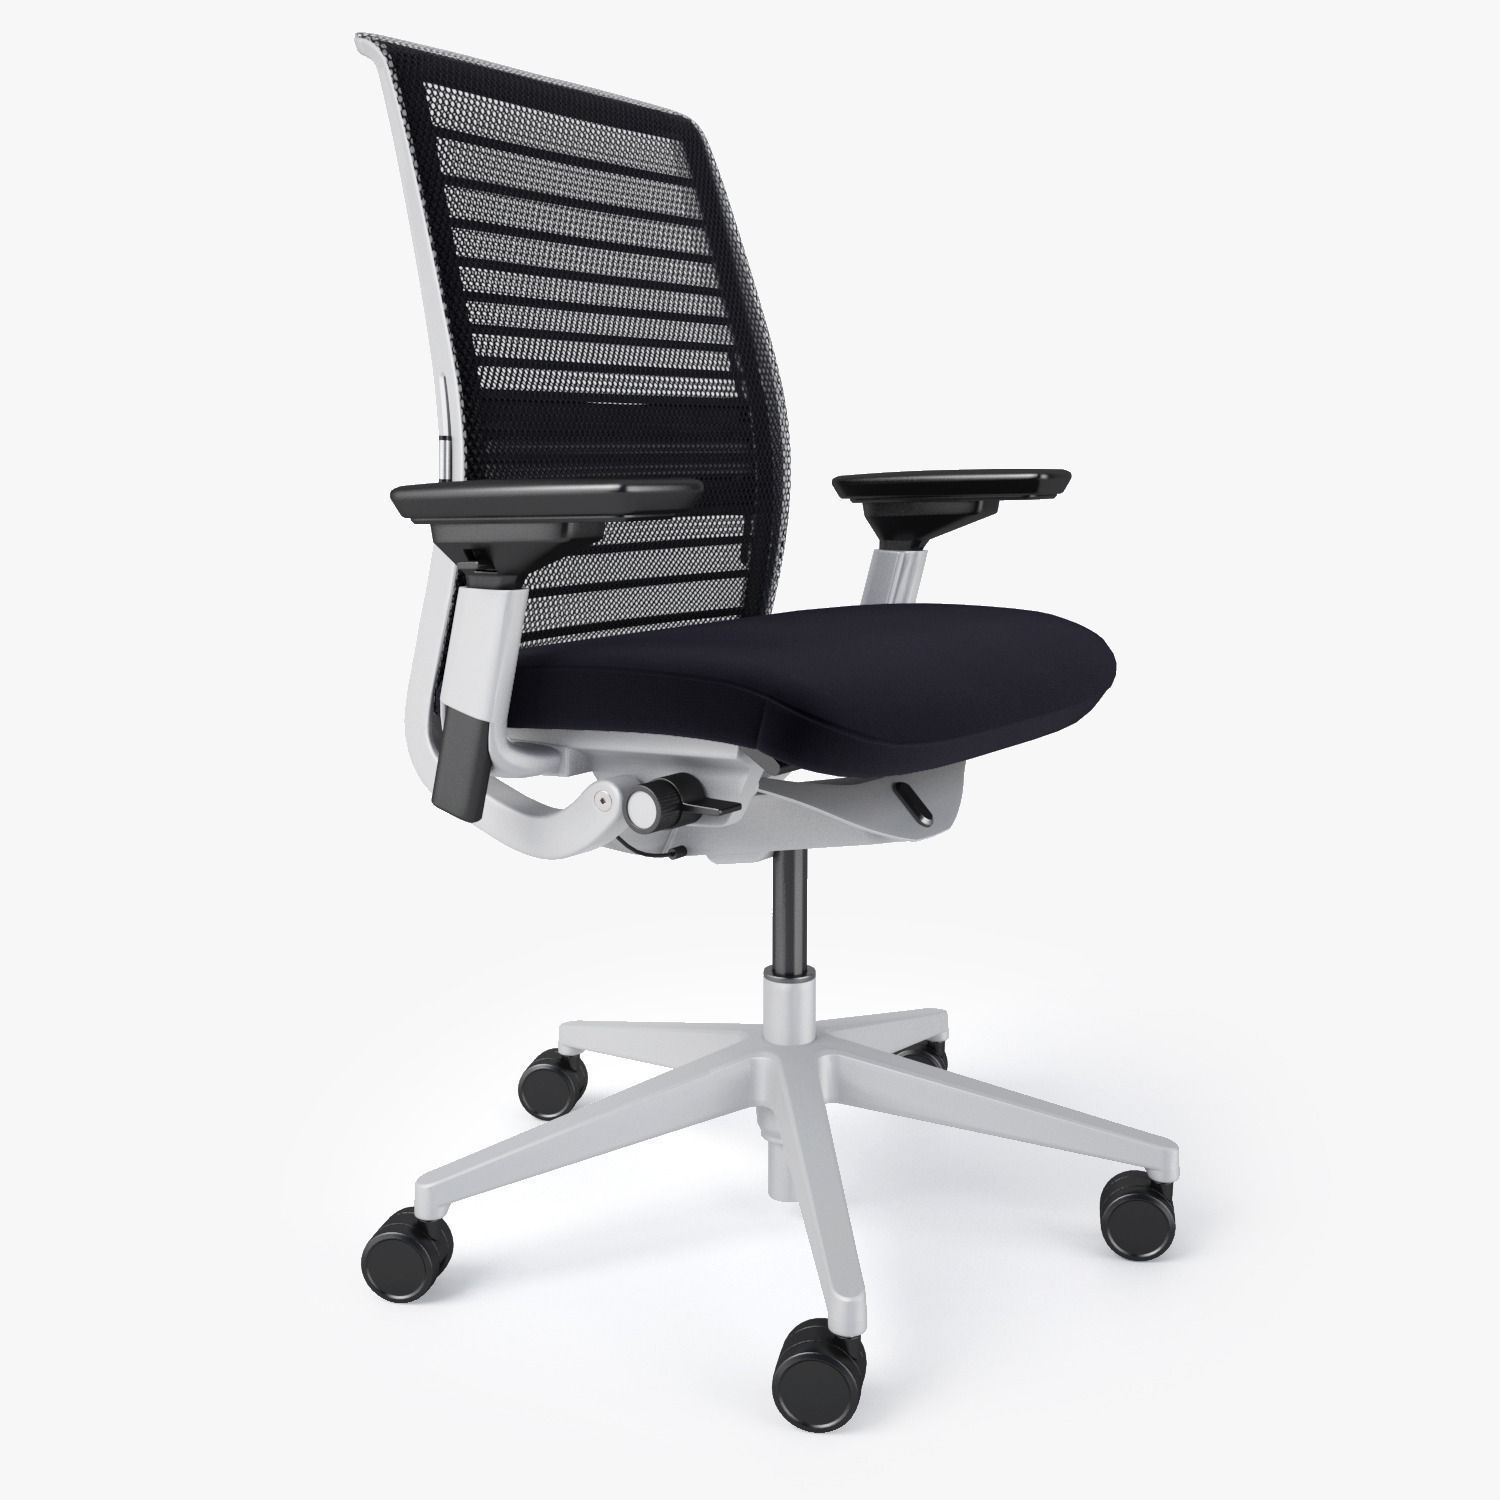 steelcase think office chair 3d model max obj fbx mtl 2 - Steelcase Chairs